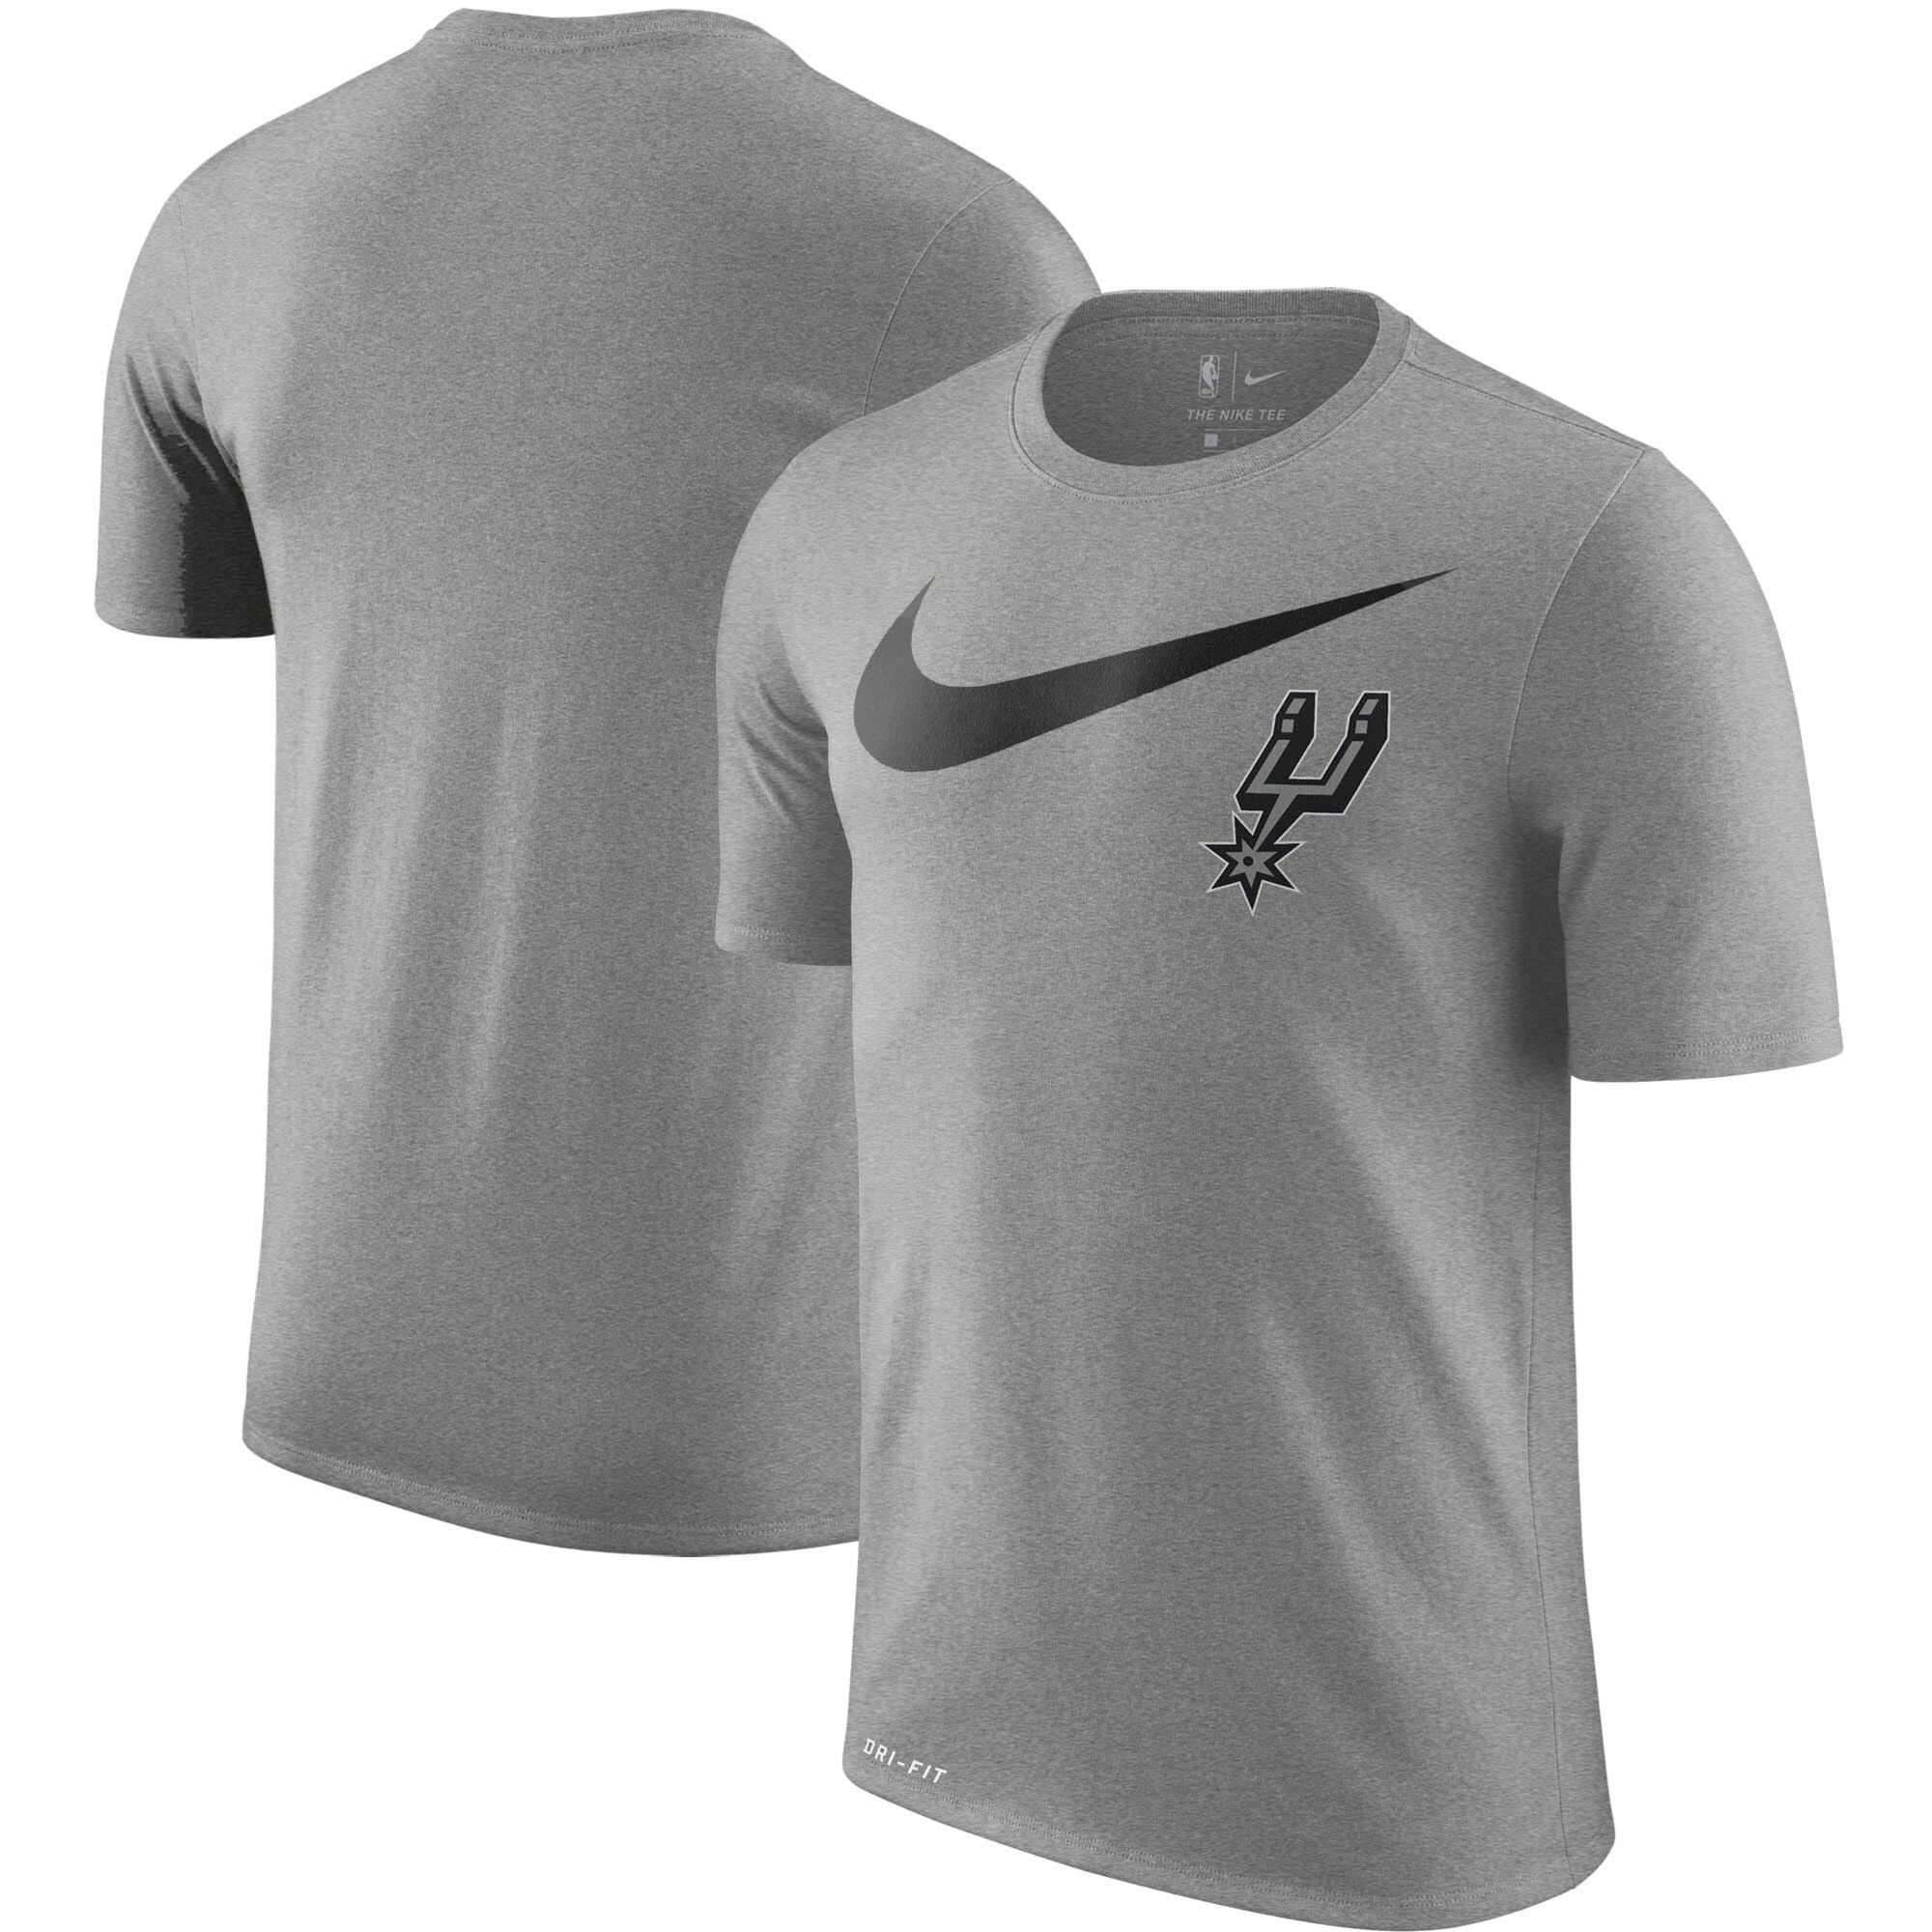 San Antonio Spurs Nike Essential Swoosh Logo Legend T-Shirt - Heathered Charcoal